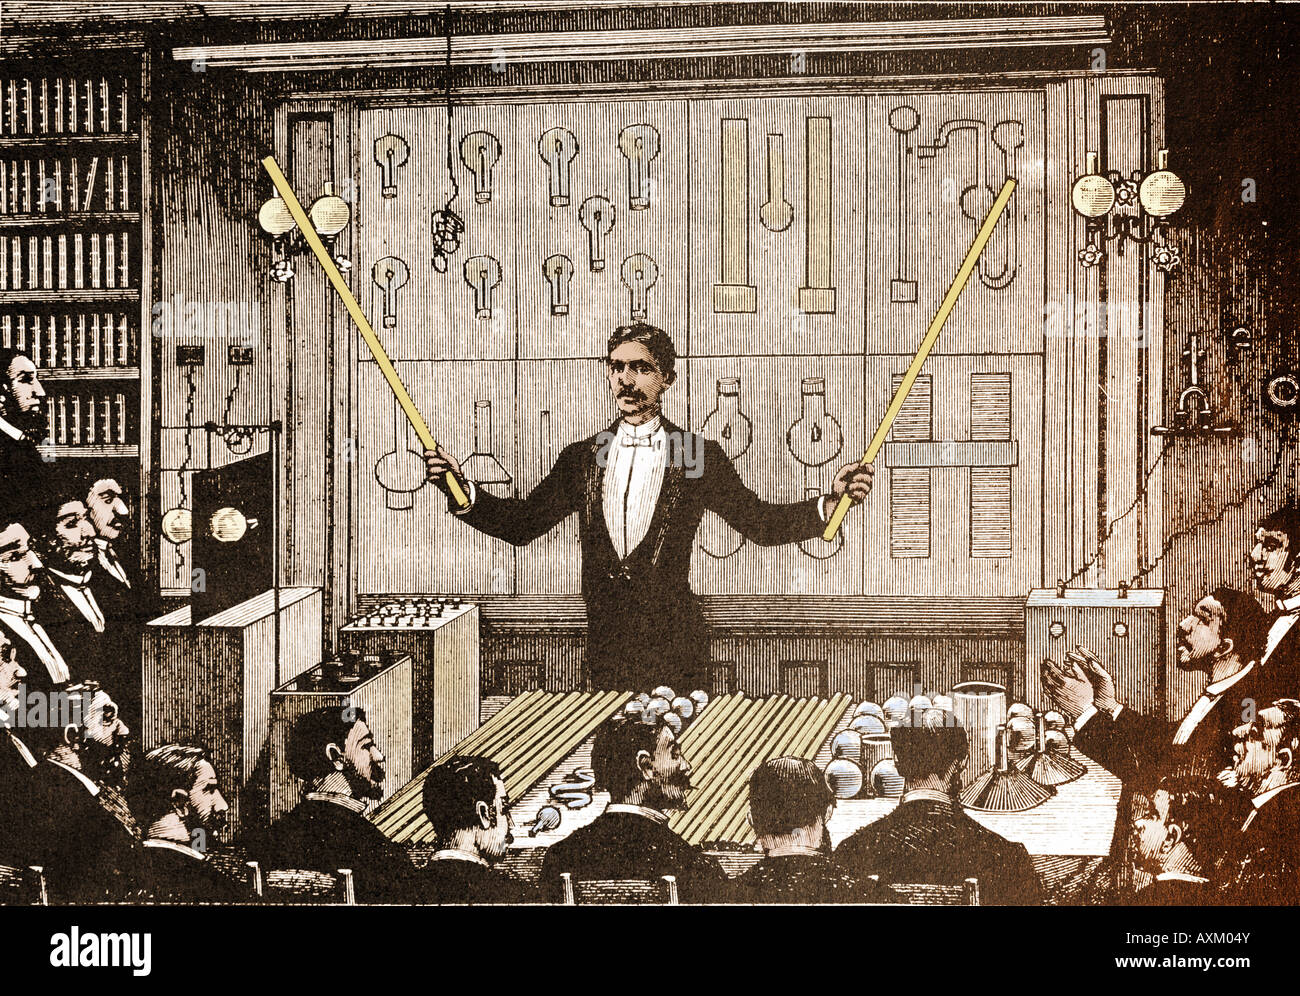 Nicola Tesla revealing the virtues of alternating current electricity. - Stock Image